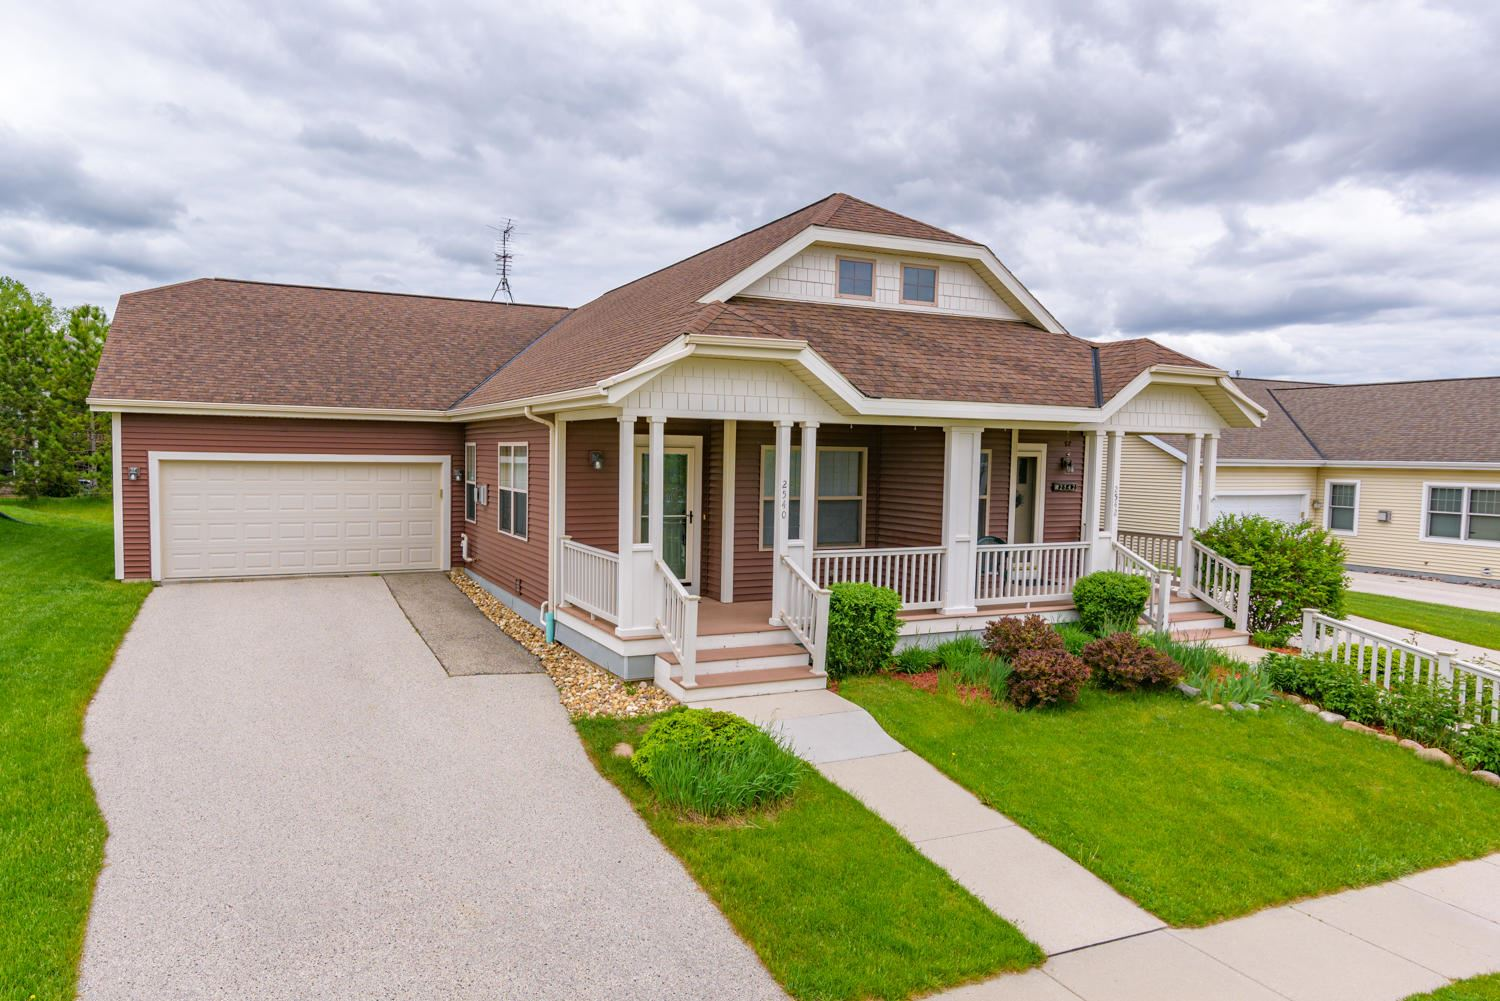 2540 Pickett St, Plymouth, WI 53073 - #: 1691754